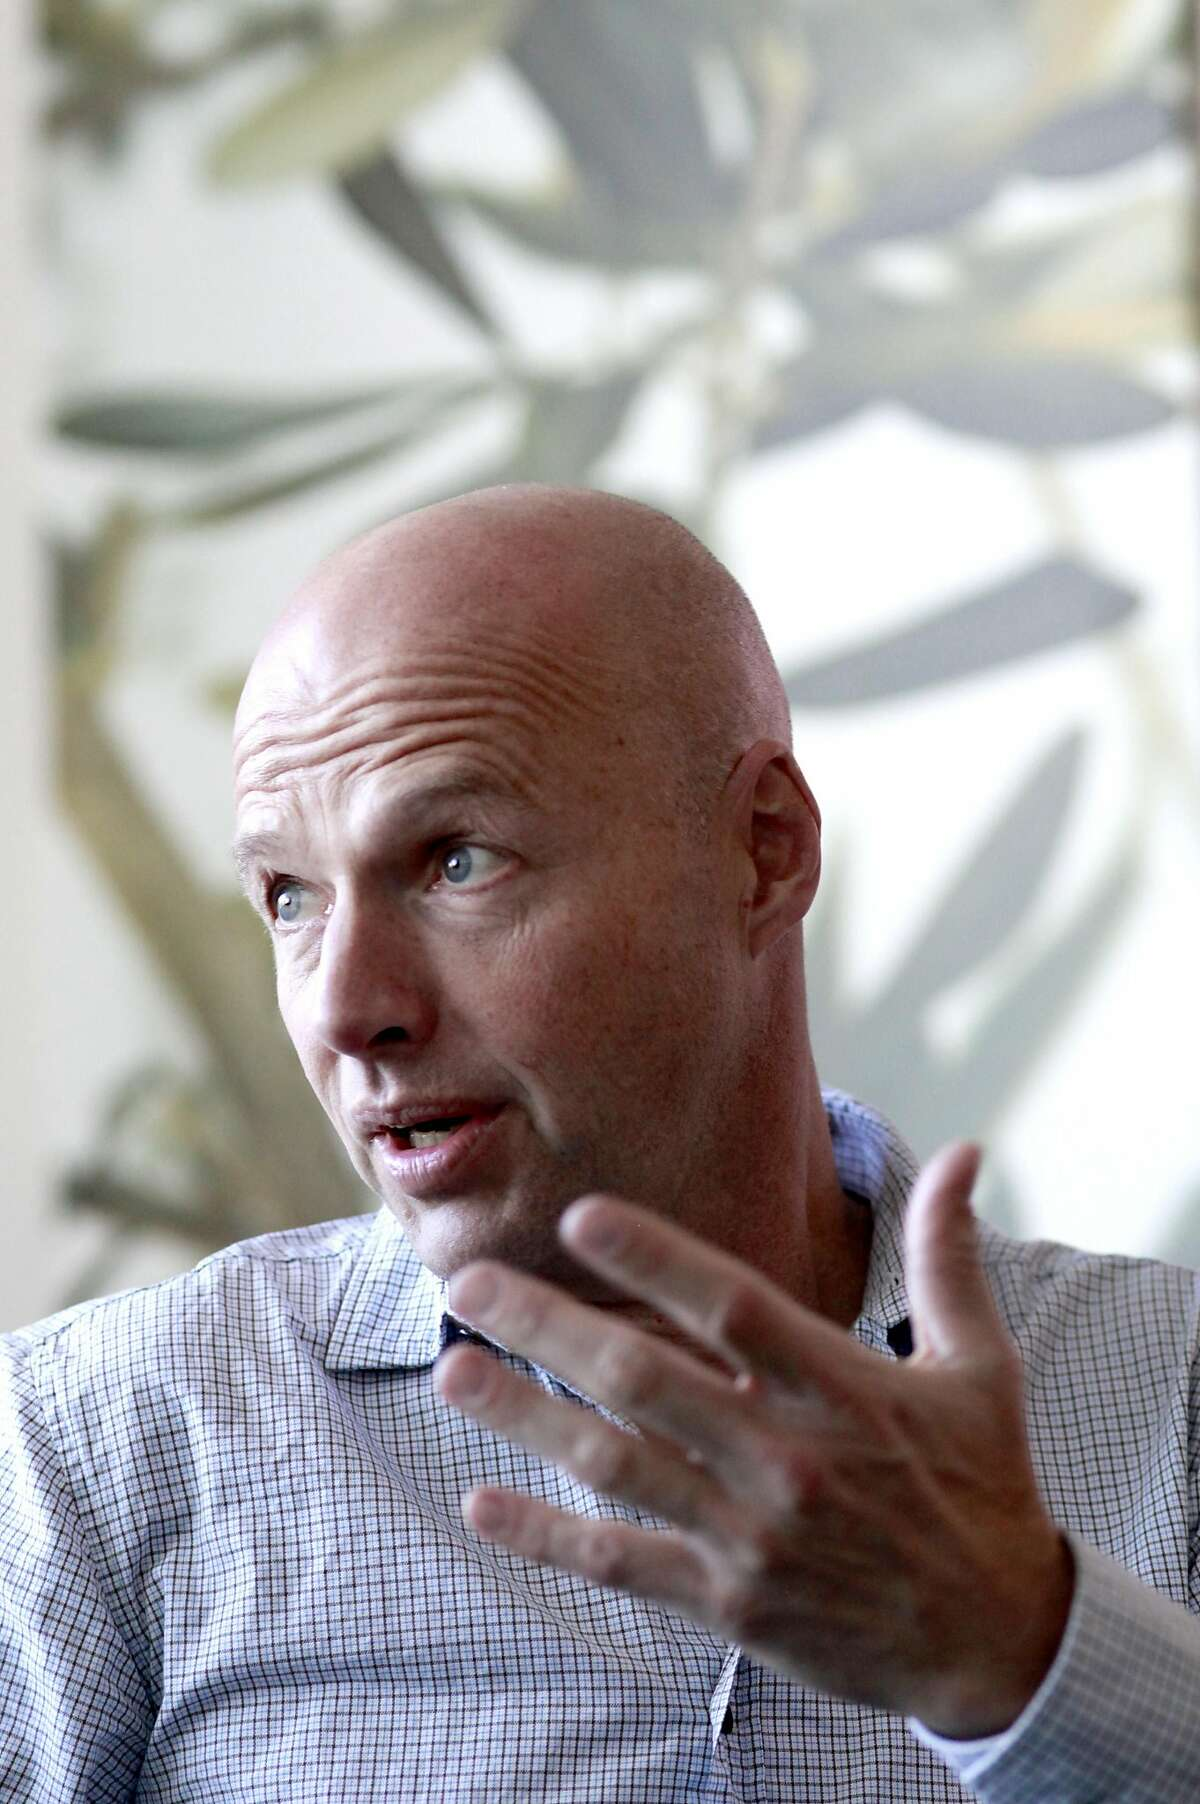 Sebastian Thrun, a pioneer of self-driving technology is the founder of Udacity an online learning company that offers nano degrees to prepare students for technology jobs, is seen at their headquarters in Mountain View,, California on Tuesday November 29, 2016.